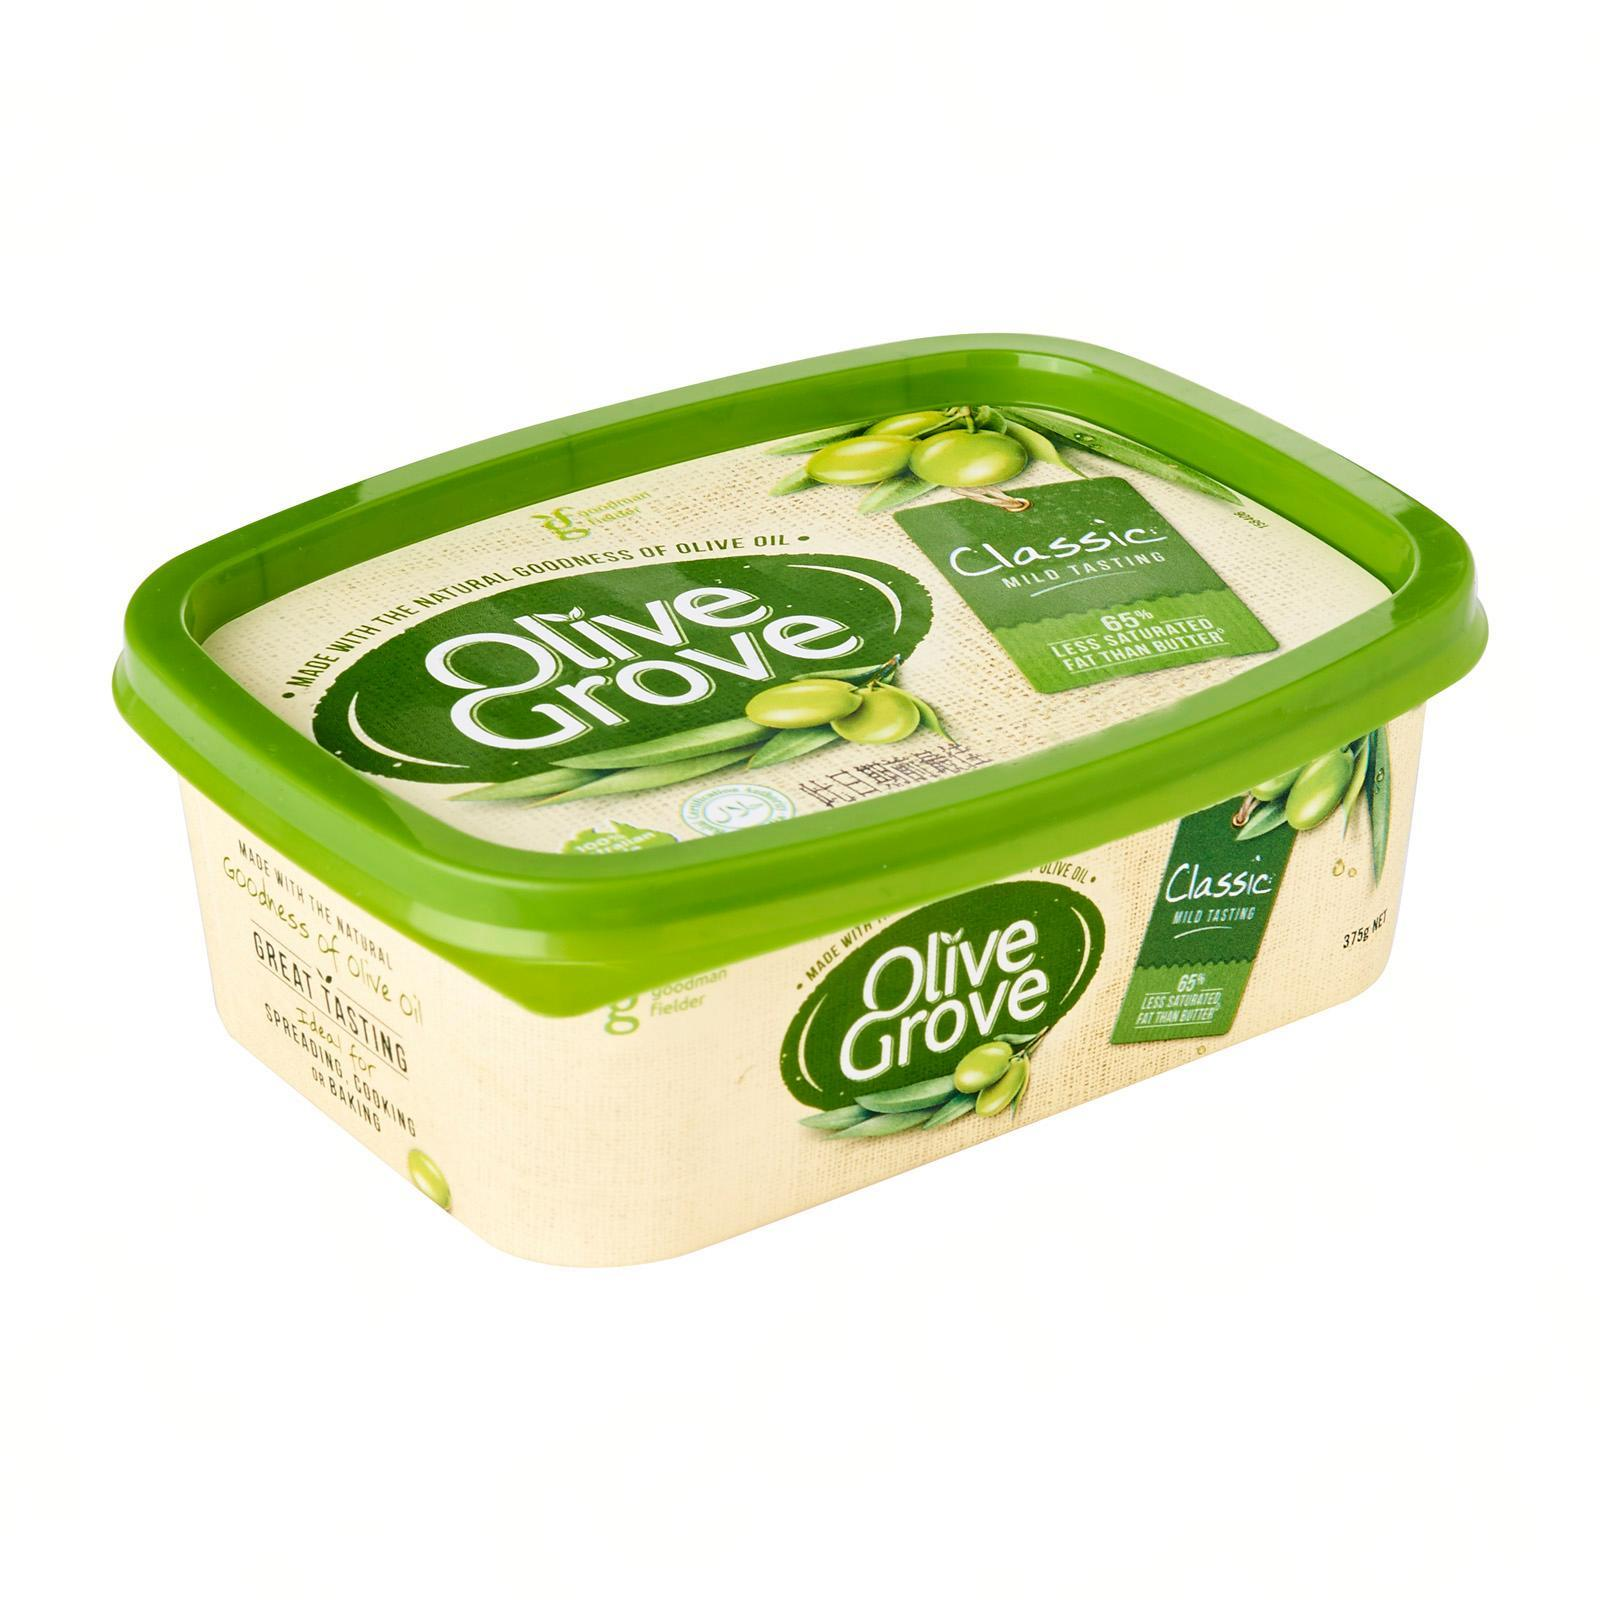 OLIVE GROVE Classic Olive Spread 375g